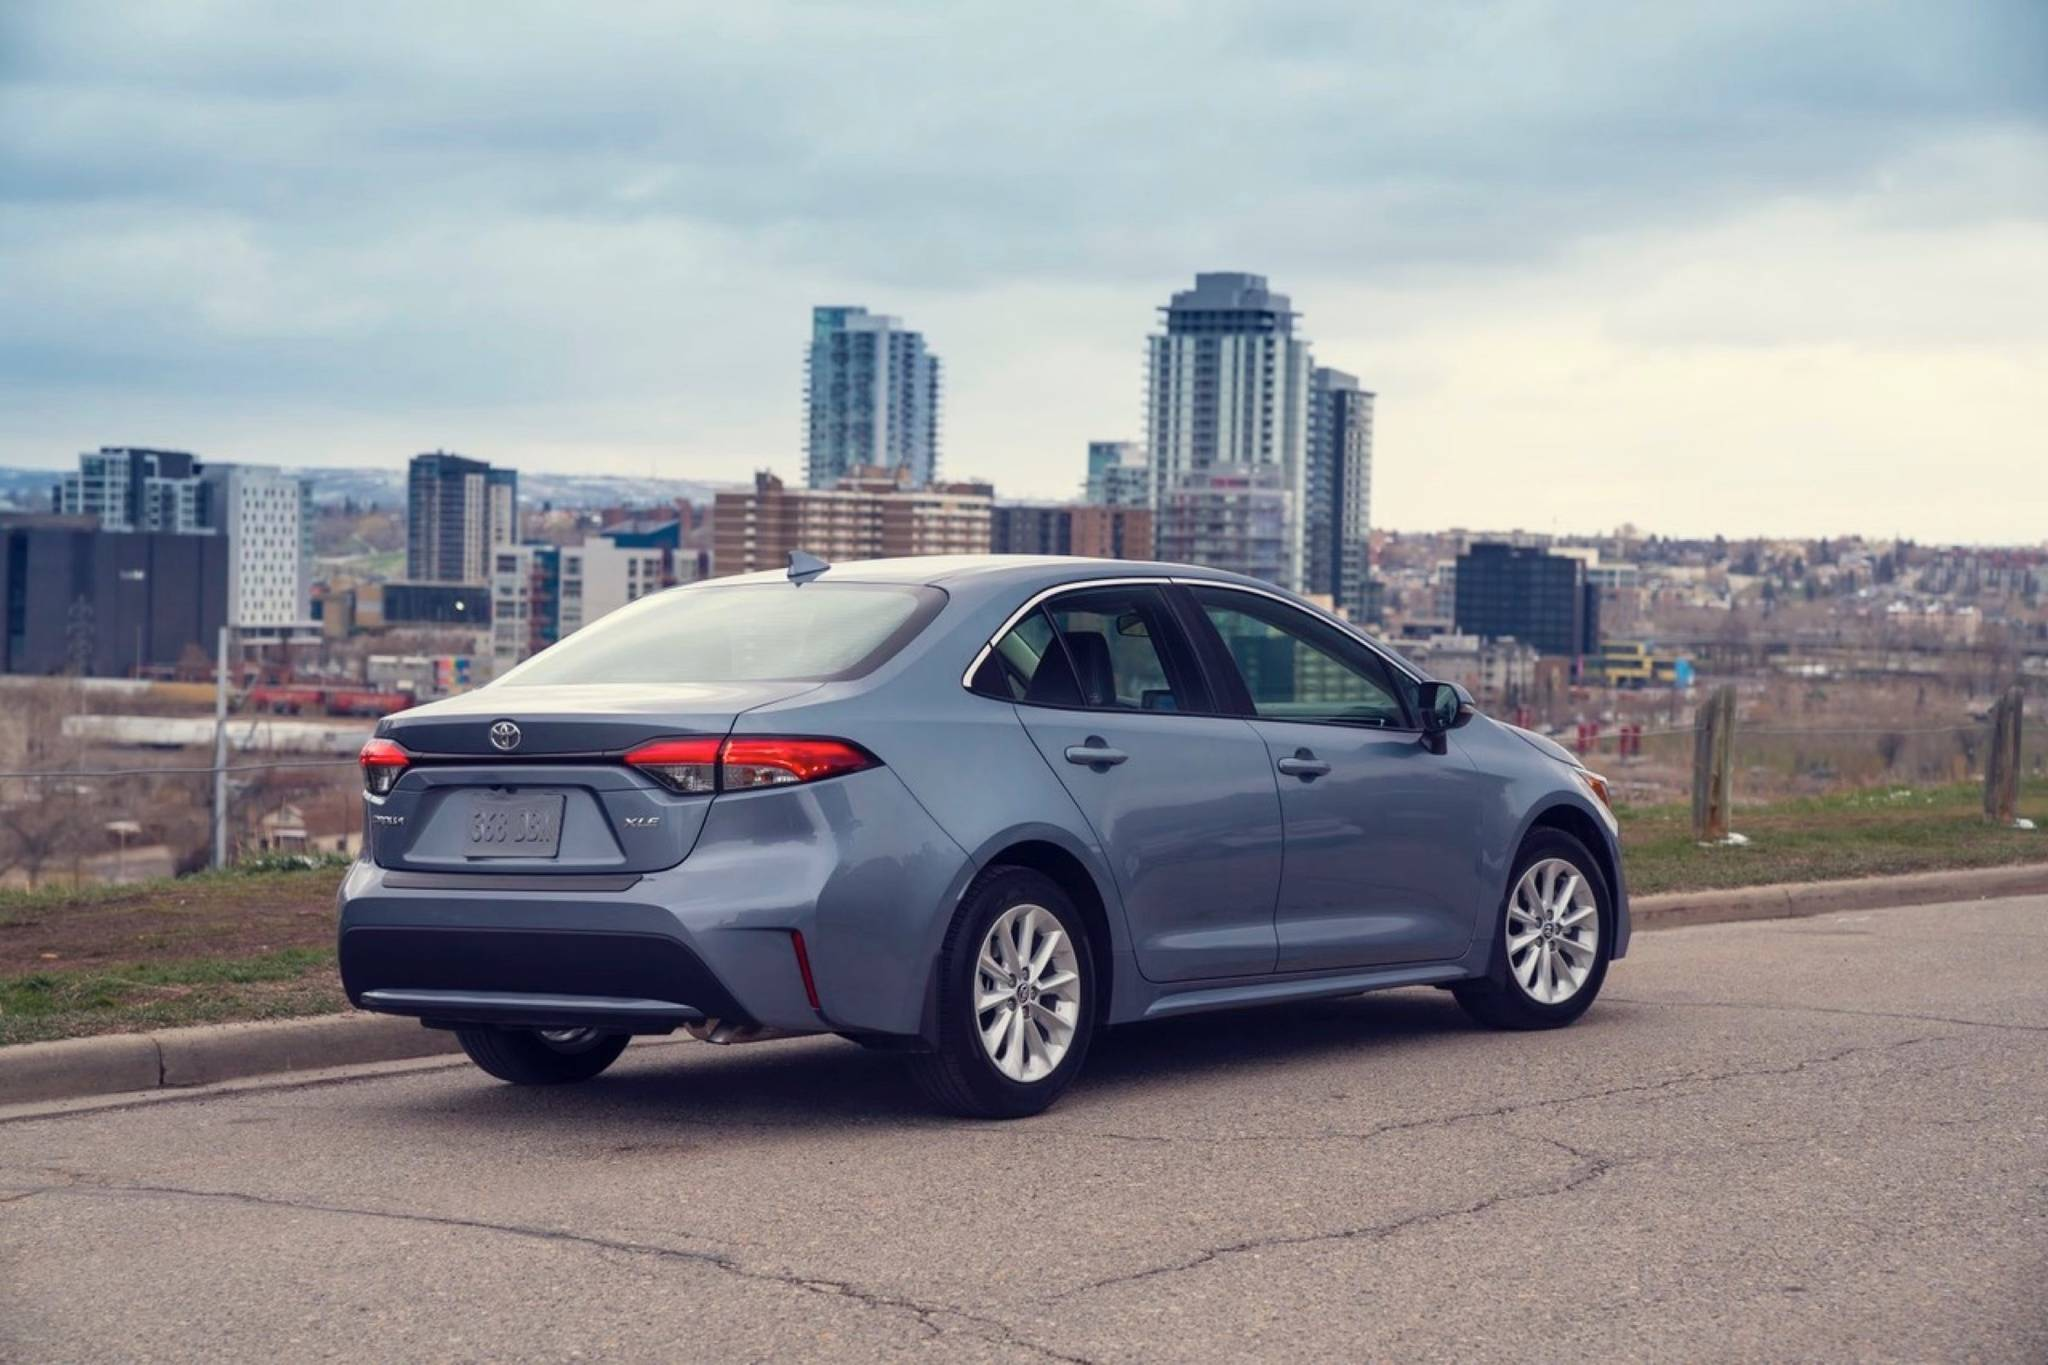 The 2020 Toyota Corolla starts from $18,990 and goes up to $26,990 for the L, LE and XLE trims (Submitted)